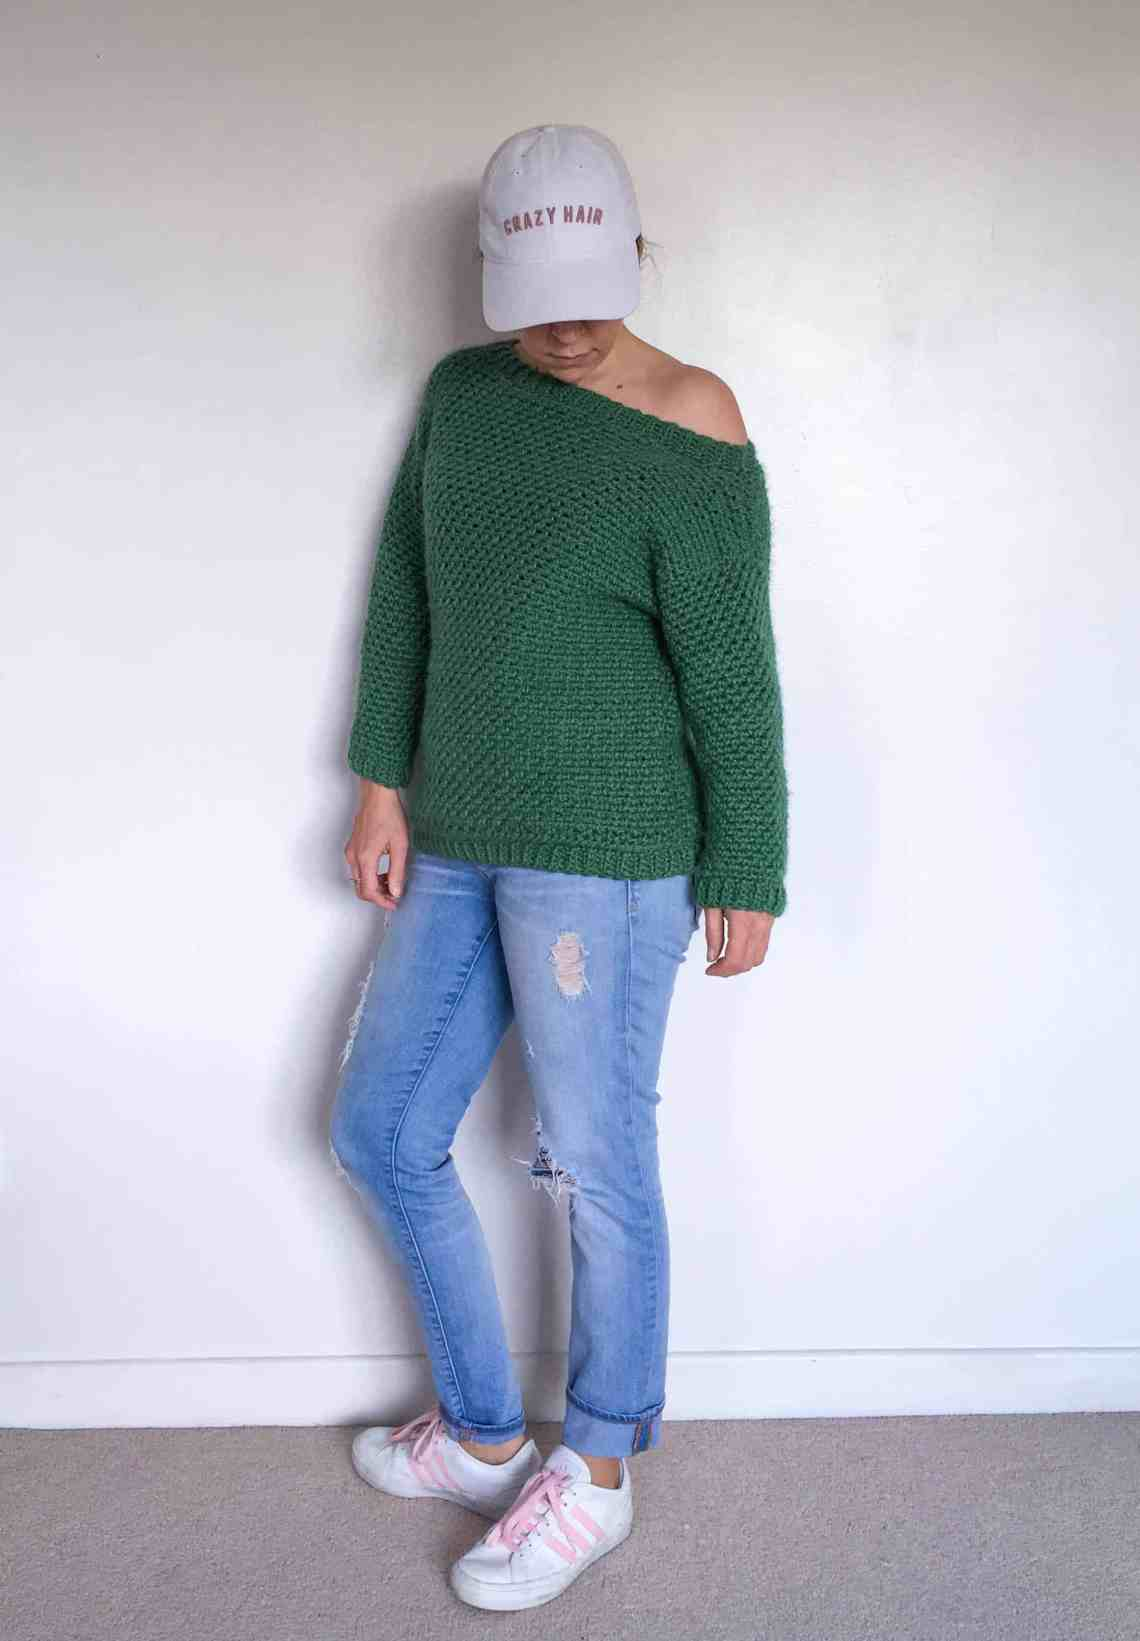 Girl in Jeans, Green Crochet Sweater Messy Hair Don't Care Cap